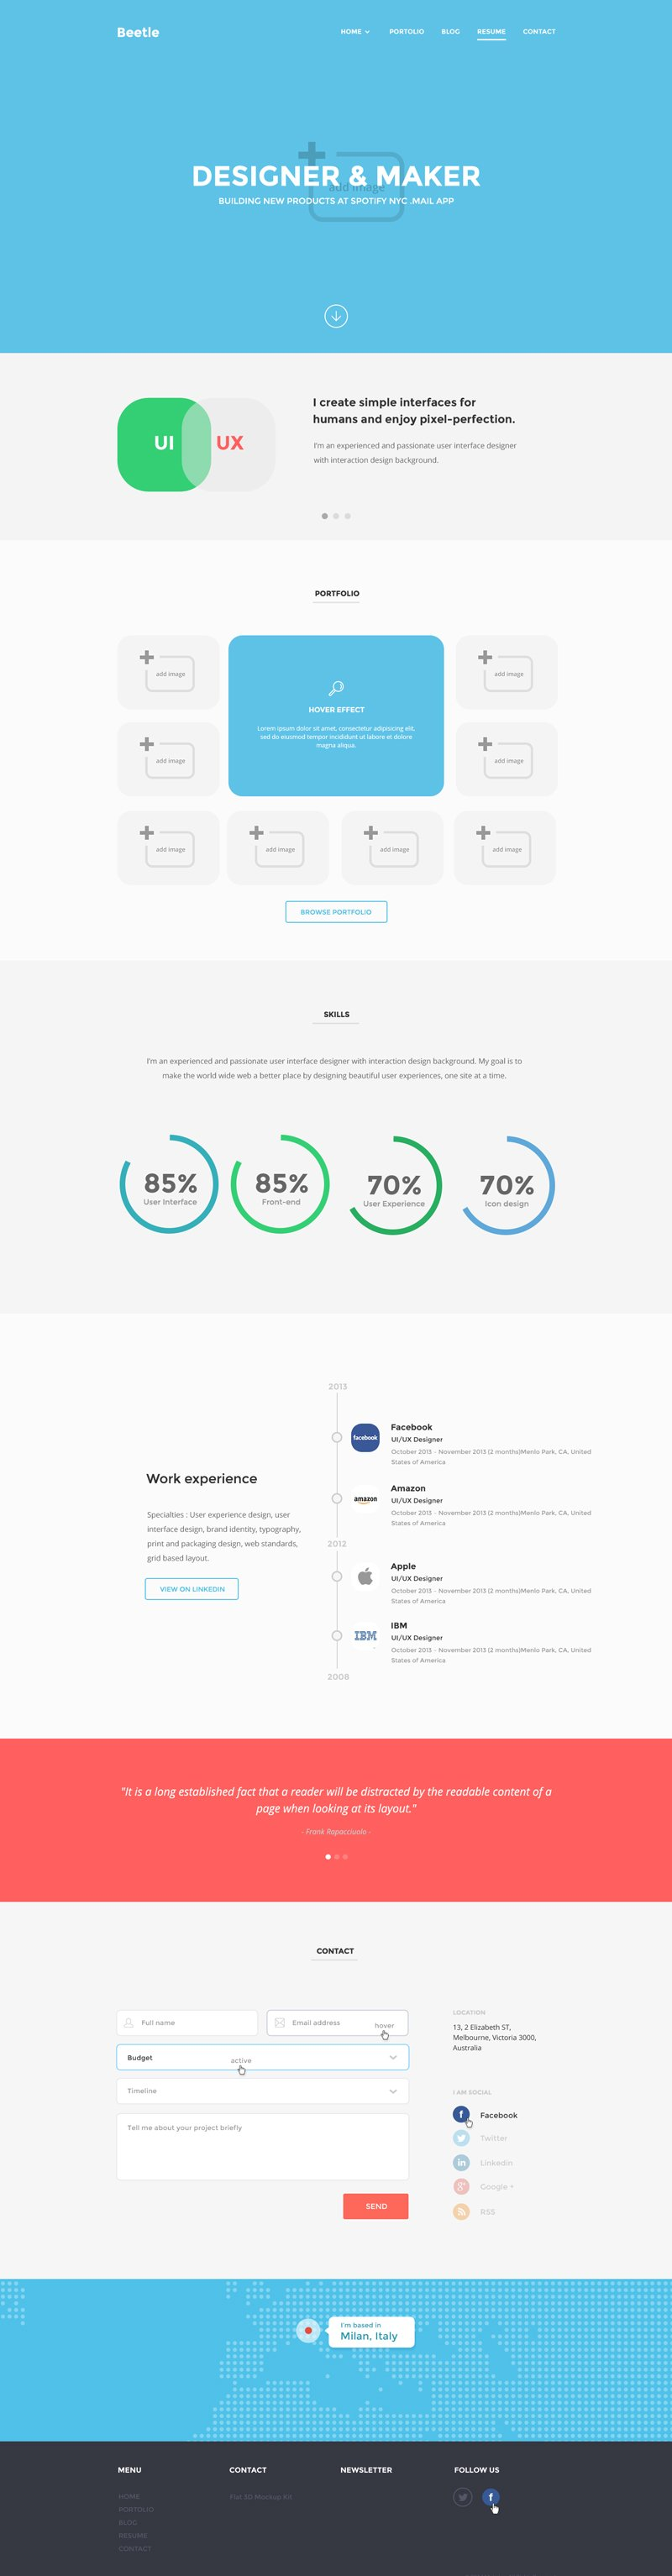 Beetle Resume PSD Template vector images 365PSD